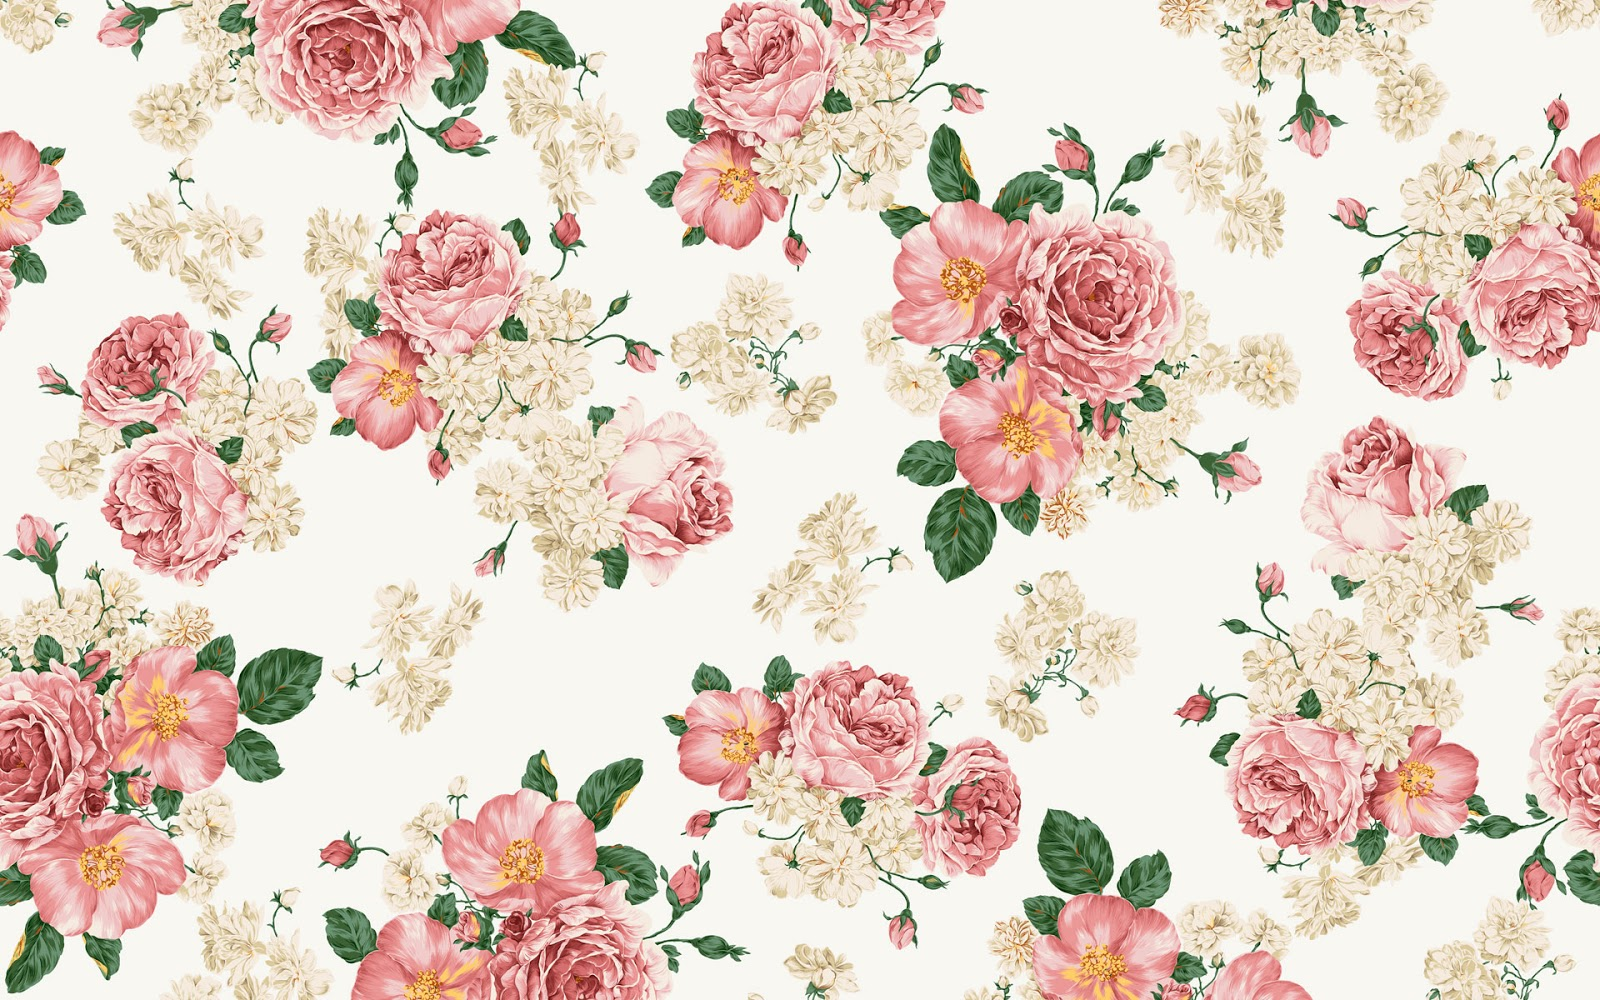 46 Vintage Floral Wallpaper Designs On Wallpapersafari